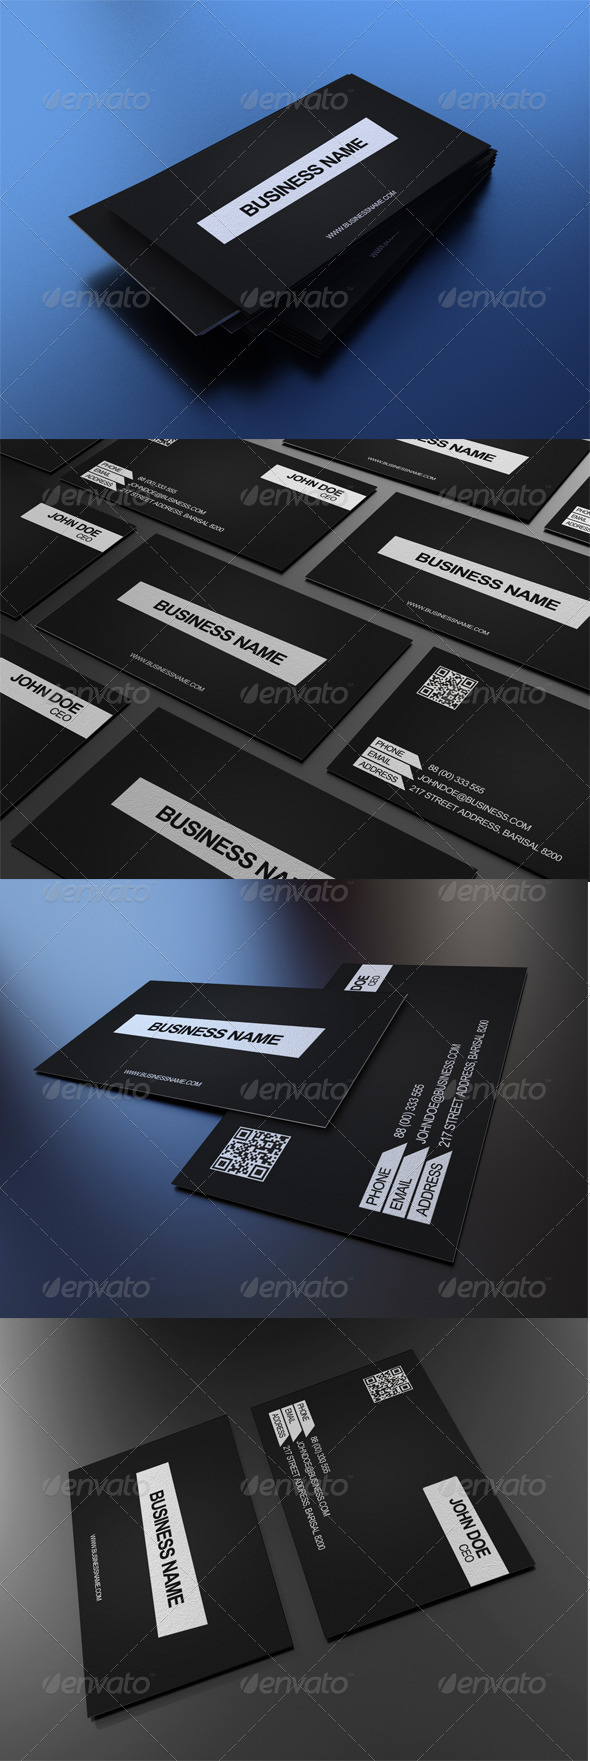 GraphicRiver Corporate Business Card 1 3545881